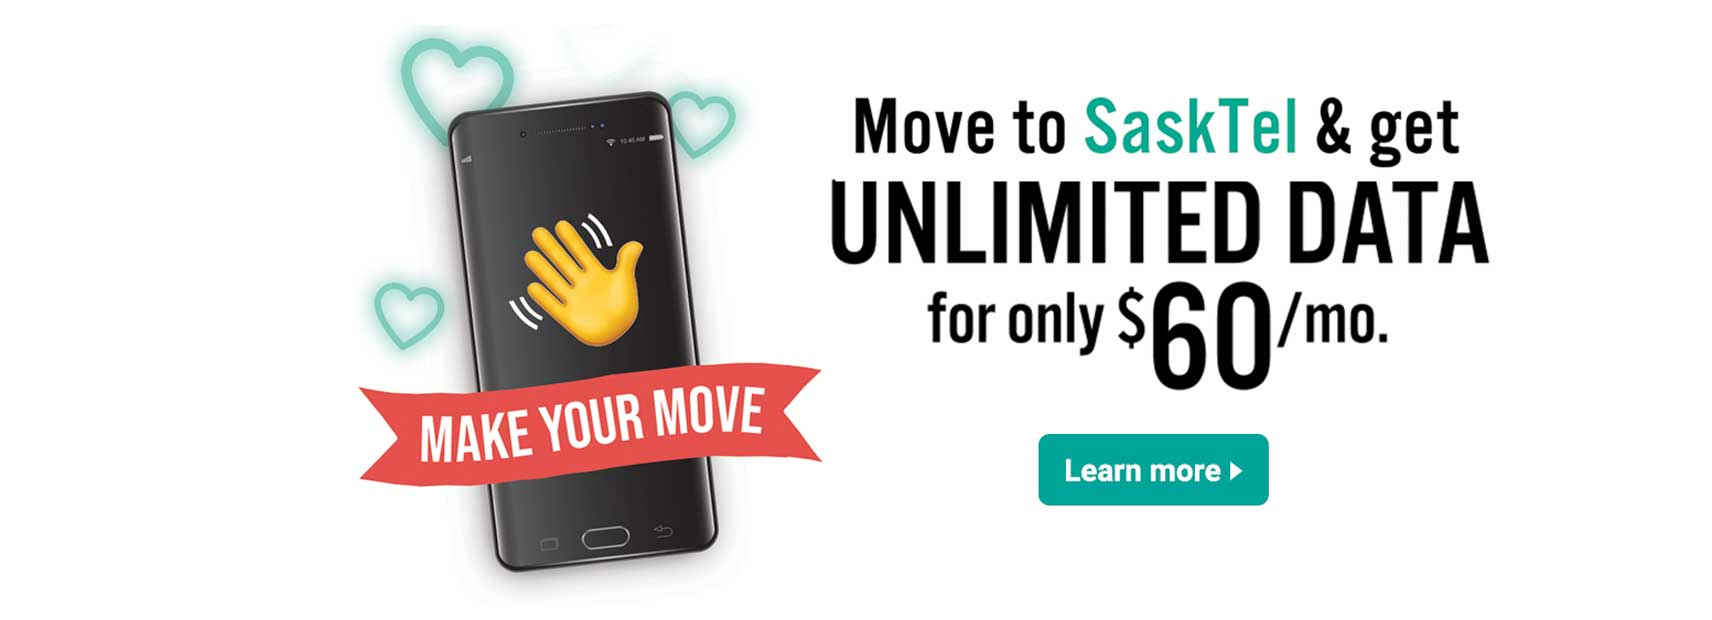 Move to SaskTel and get unlimited data for only $60 a month